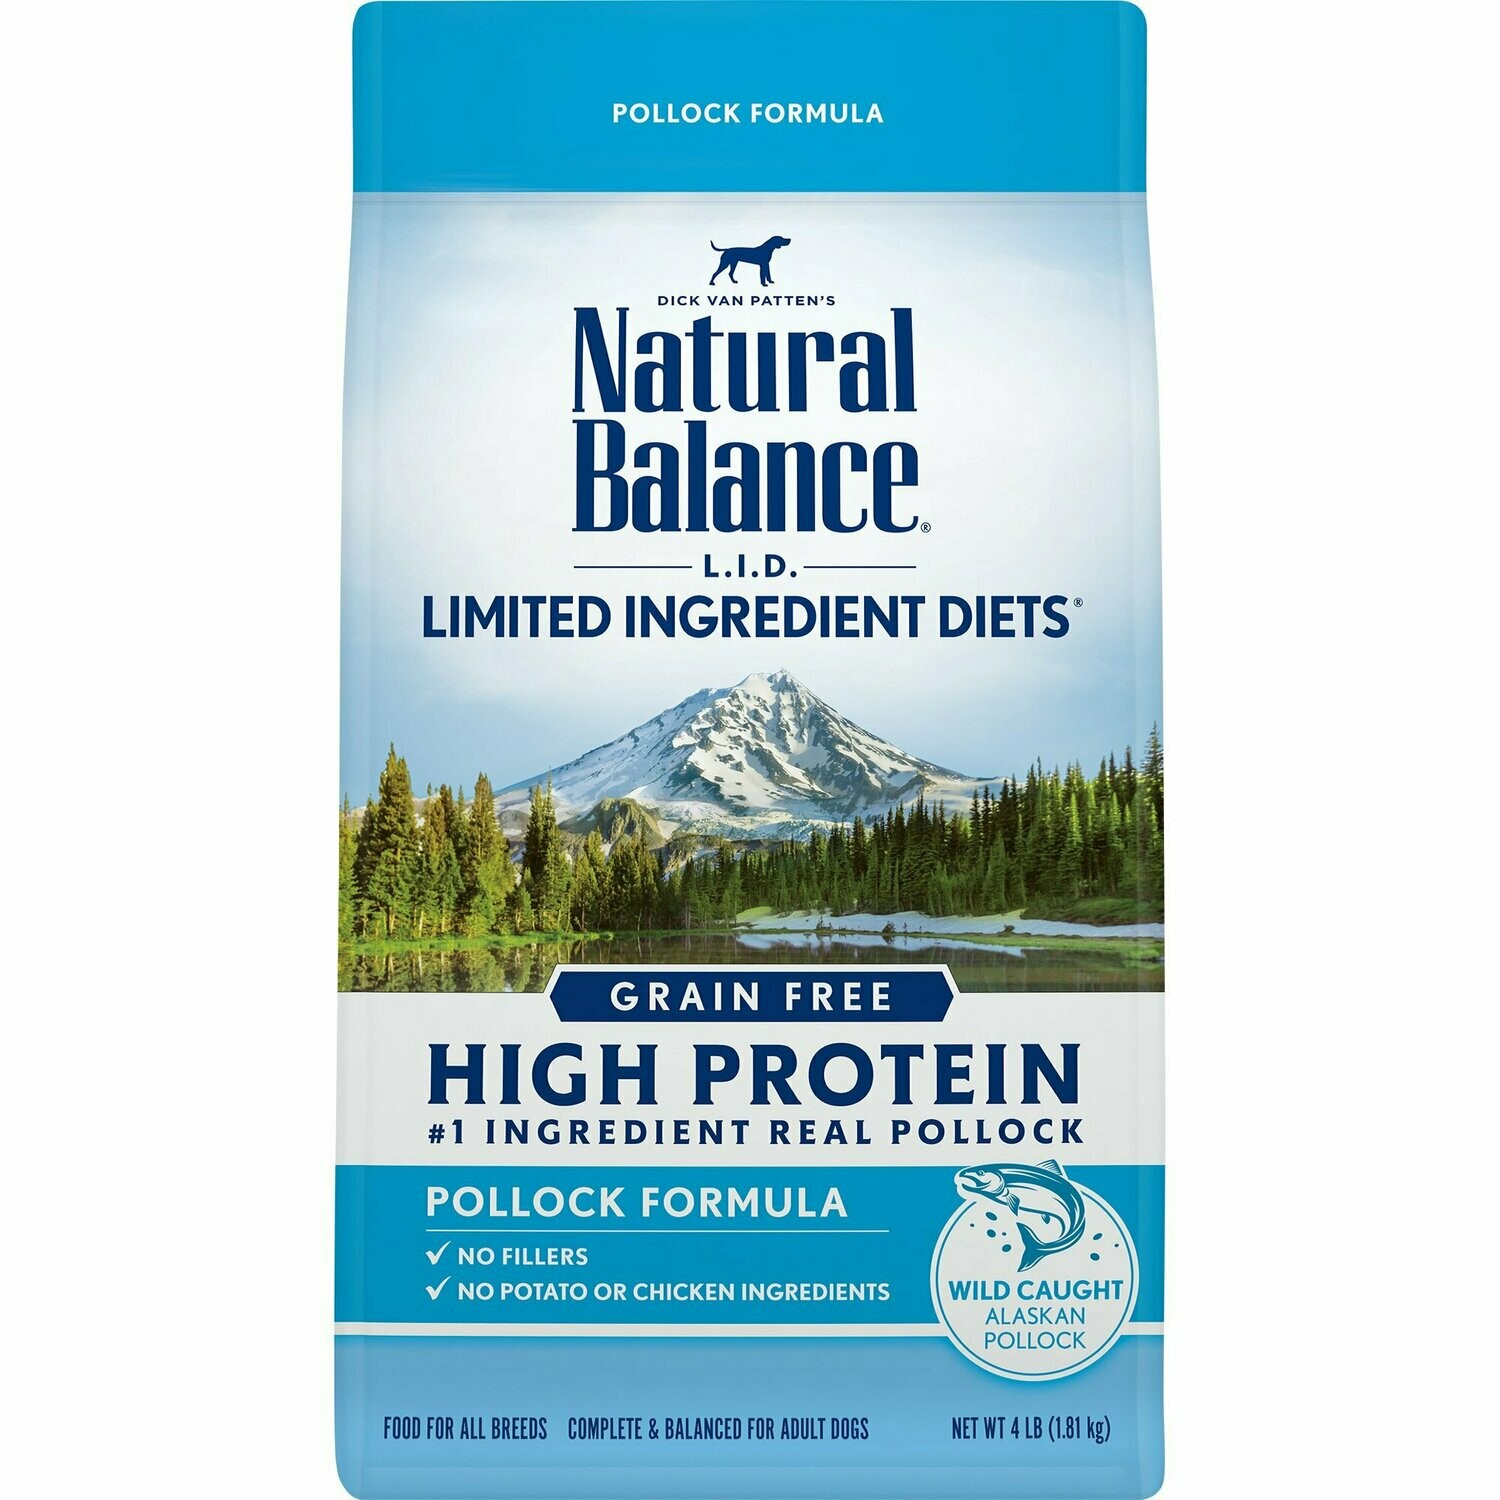 Natural Balance Limited Ingredient Diets High Protein Grain Free Pollock Formula Dry Dog Food 4 lbs. (6/19) (A.G2)